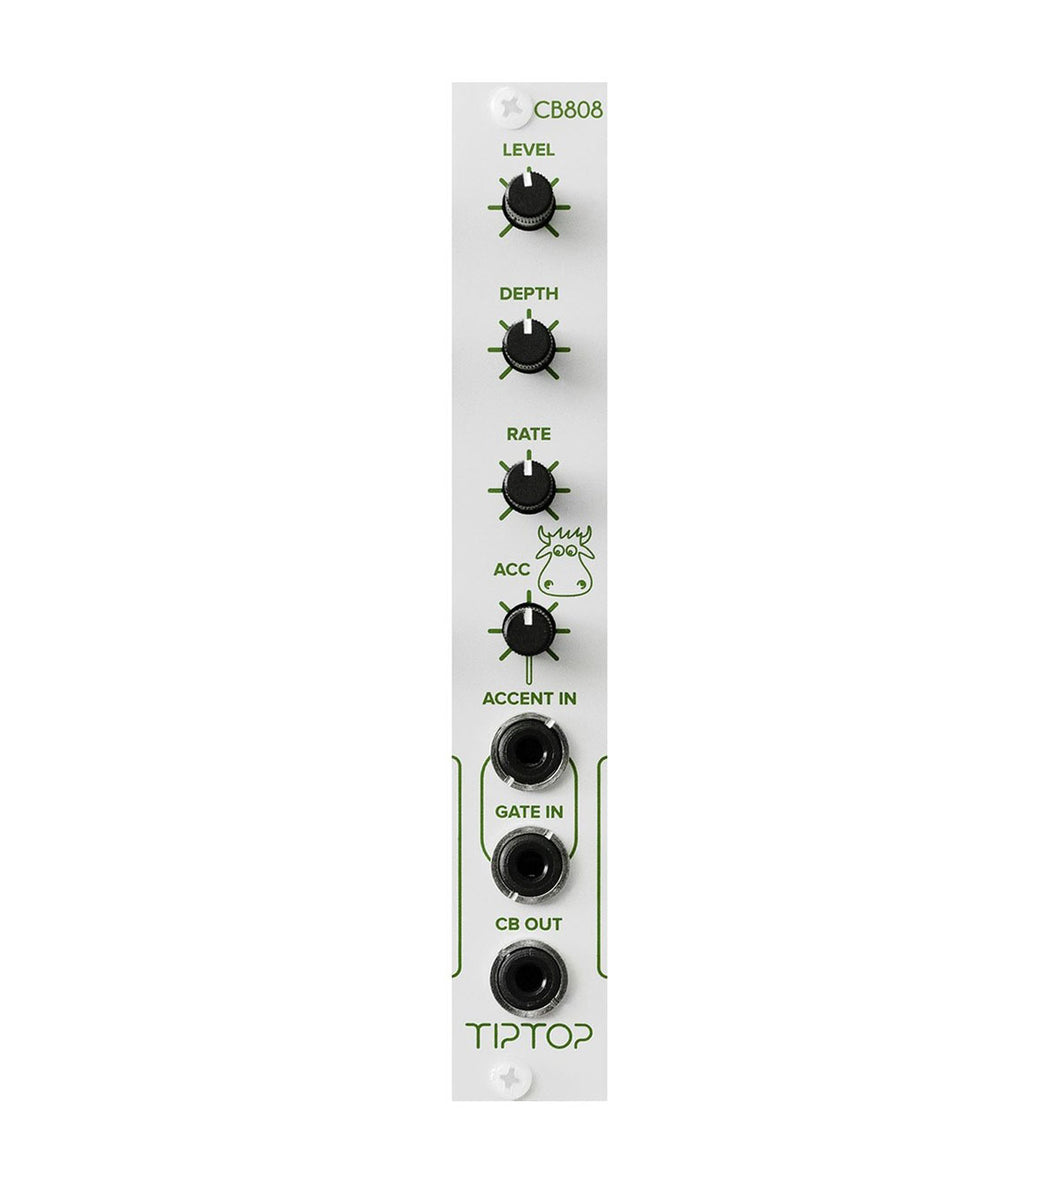 Tiptop Audio CB808